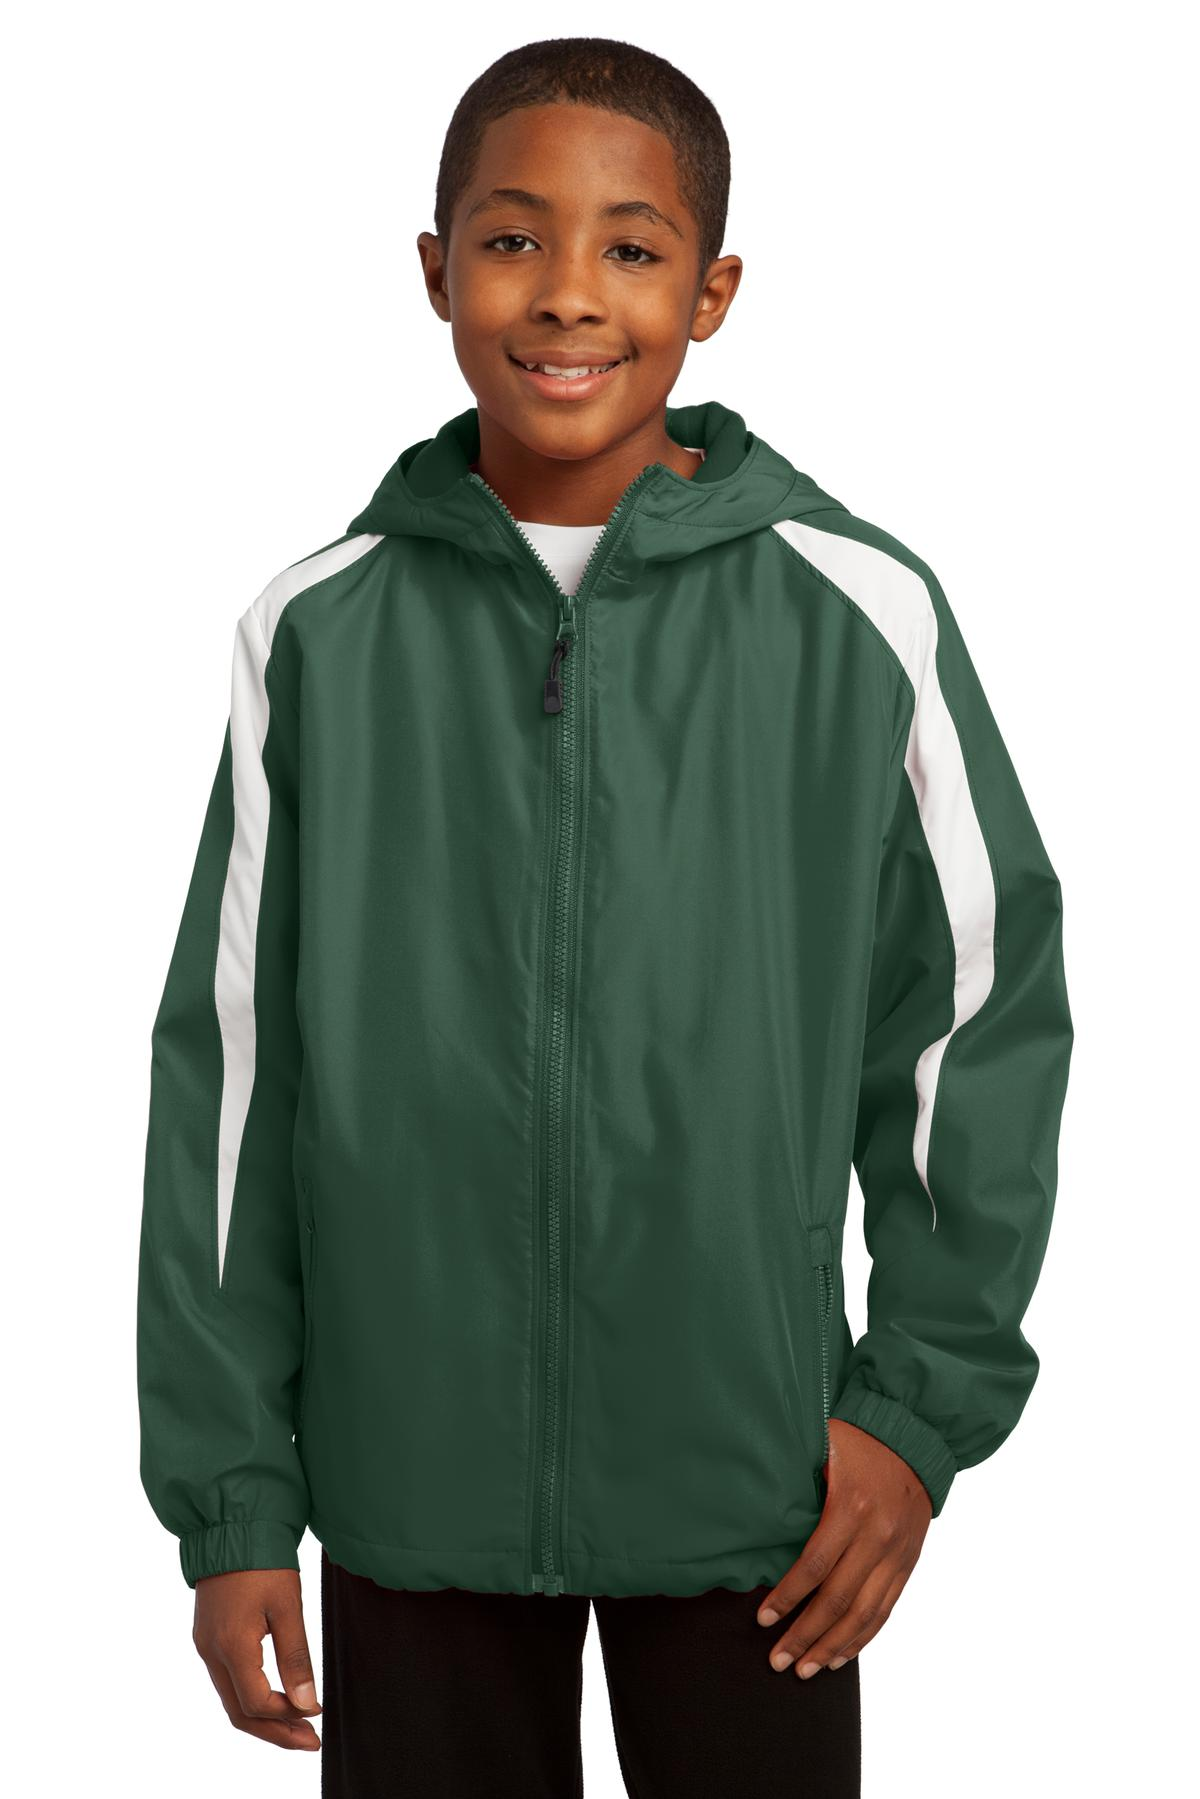 Sport-Tek Youth Fleece-Lined Colorblock Jacket. YST81